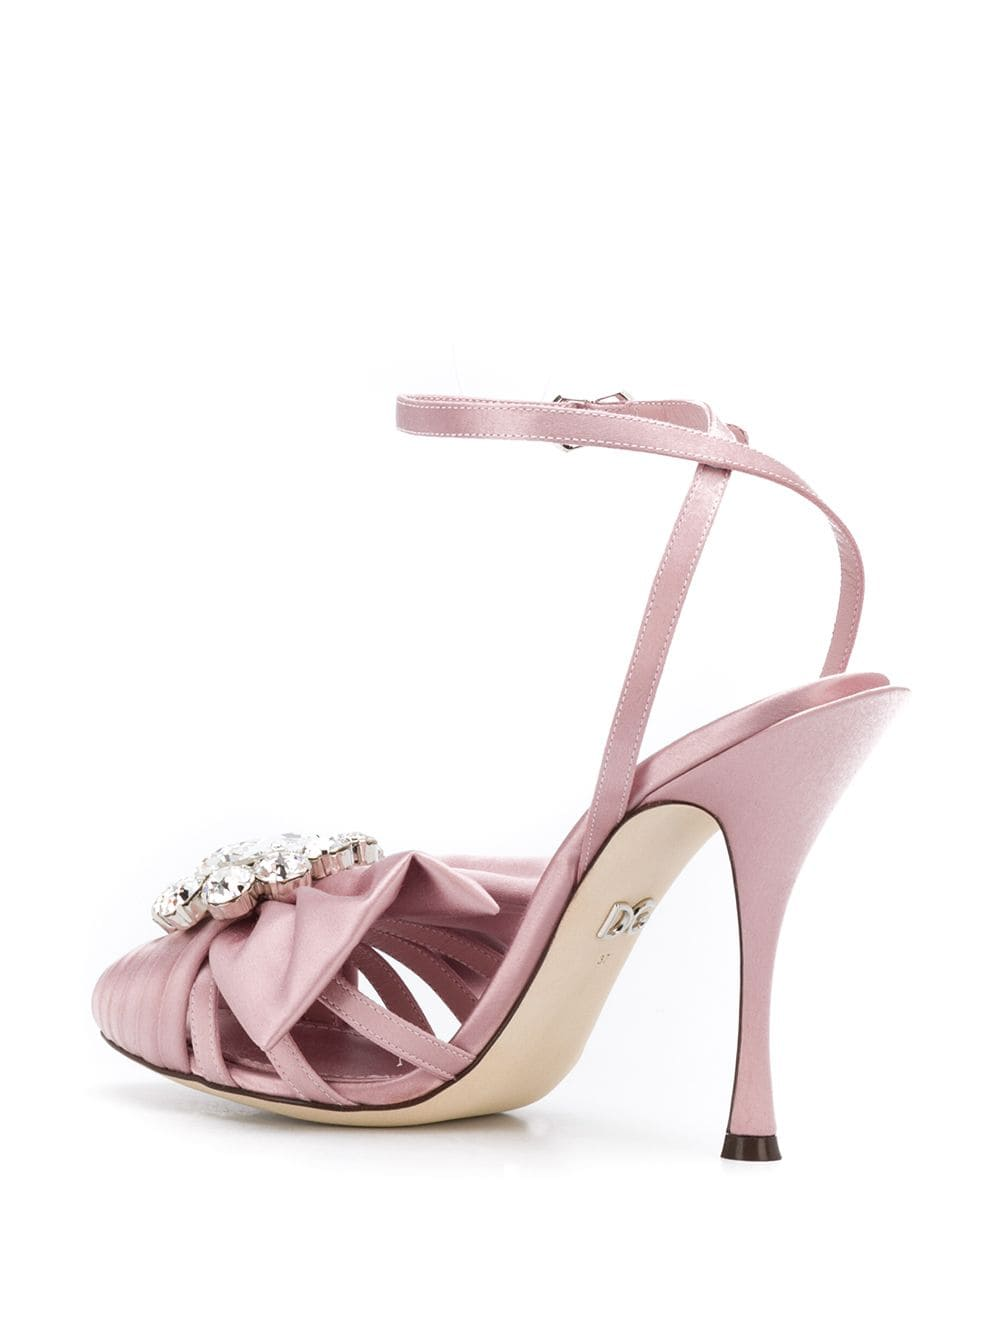 pink leather and suede open toe sandal DOLCE & GABBANA |  | CR0831-A76308H406